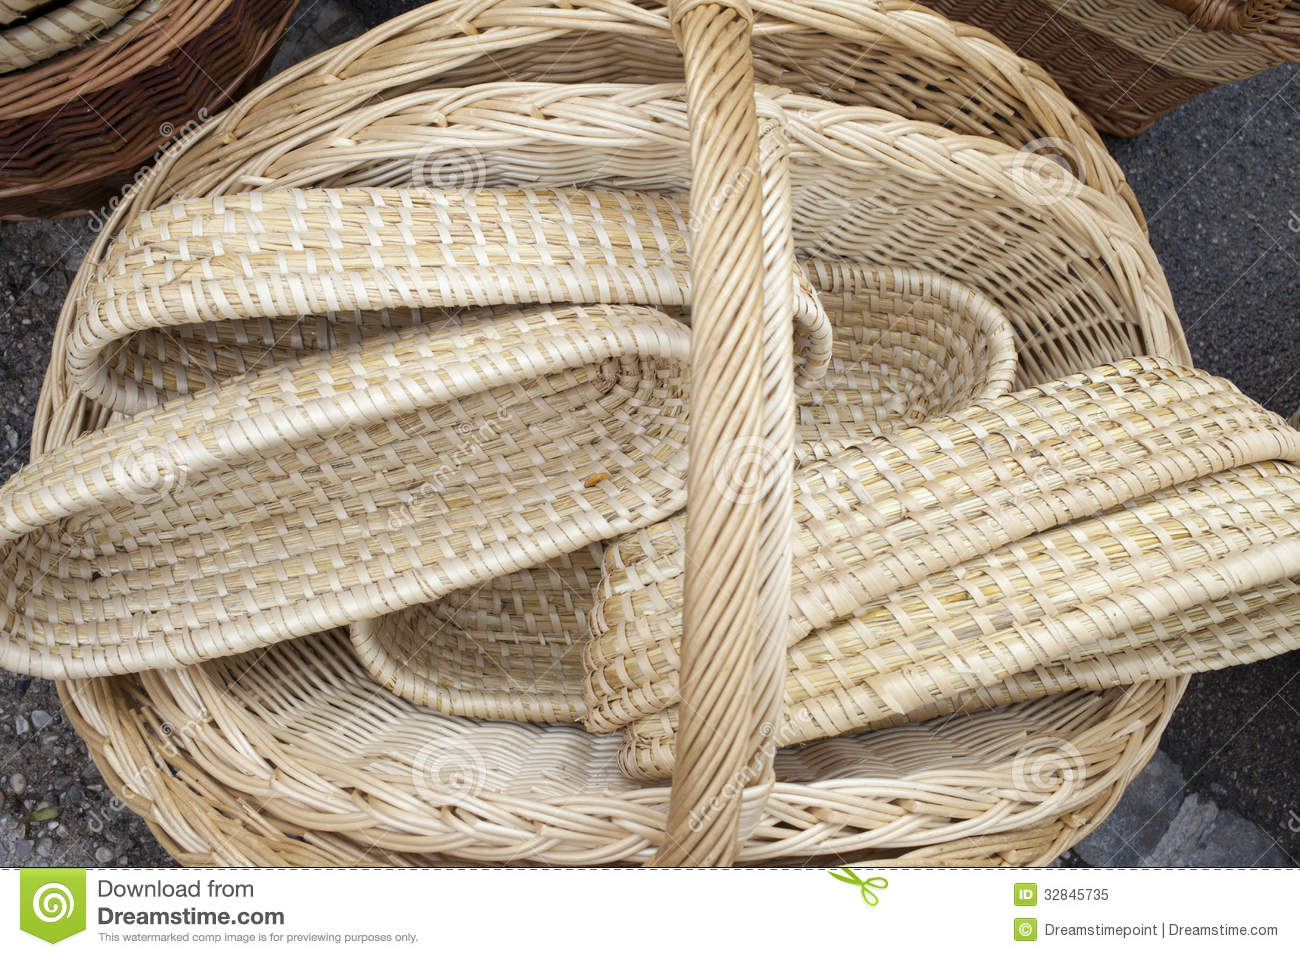 Animal Wicker Hamper Wicker Baskets And Boxes Royalty Free Stock Photo Image